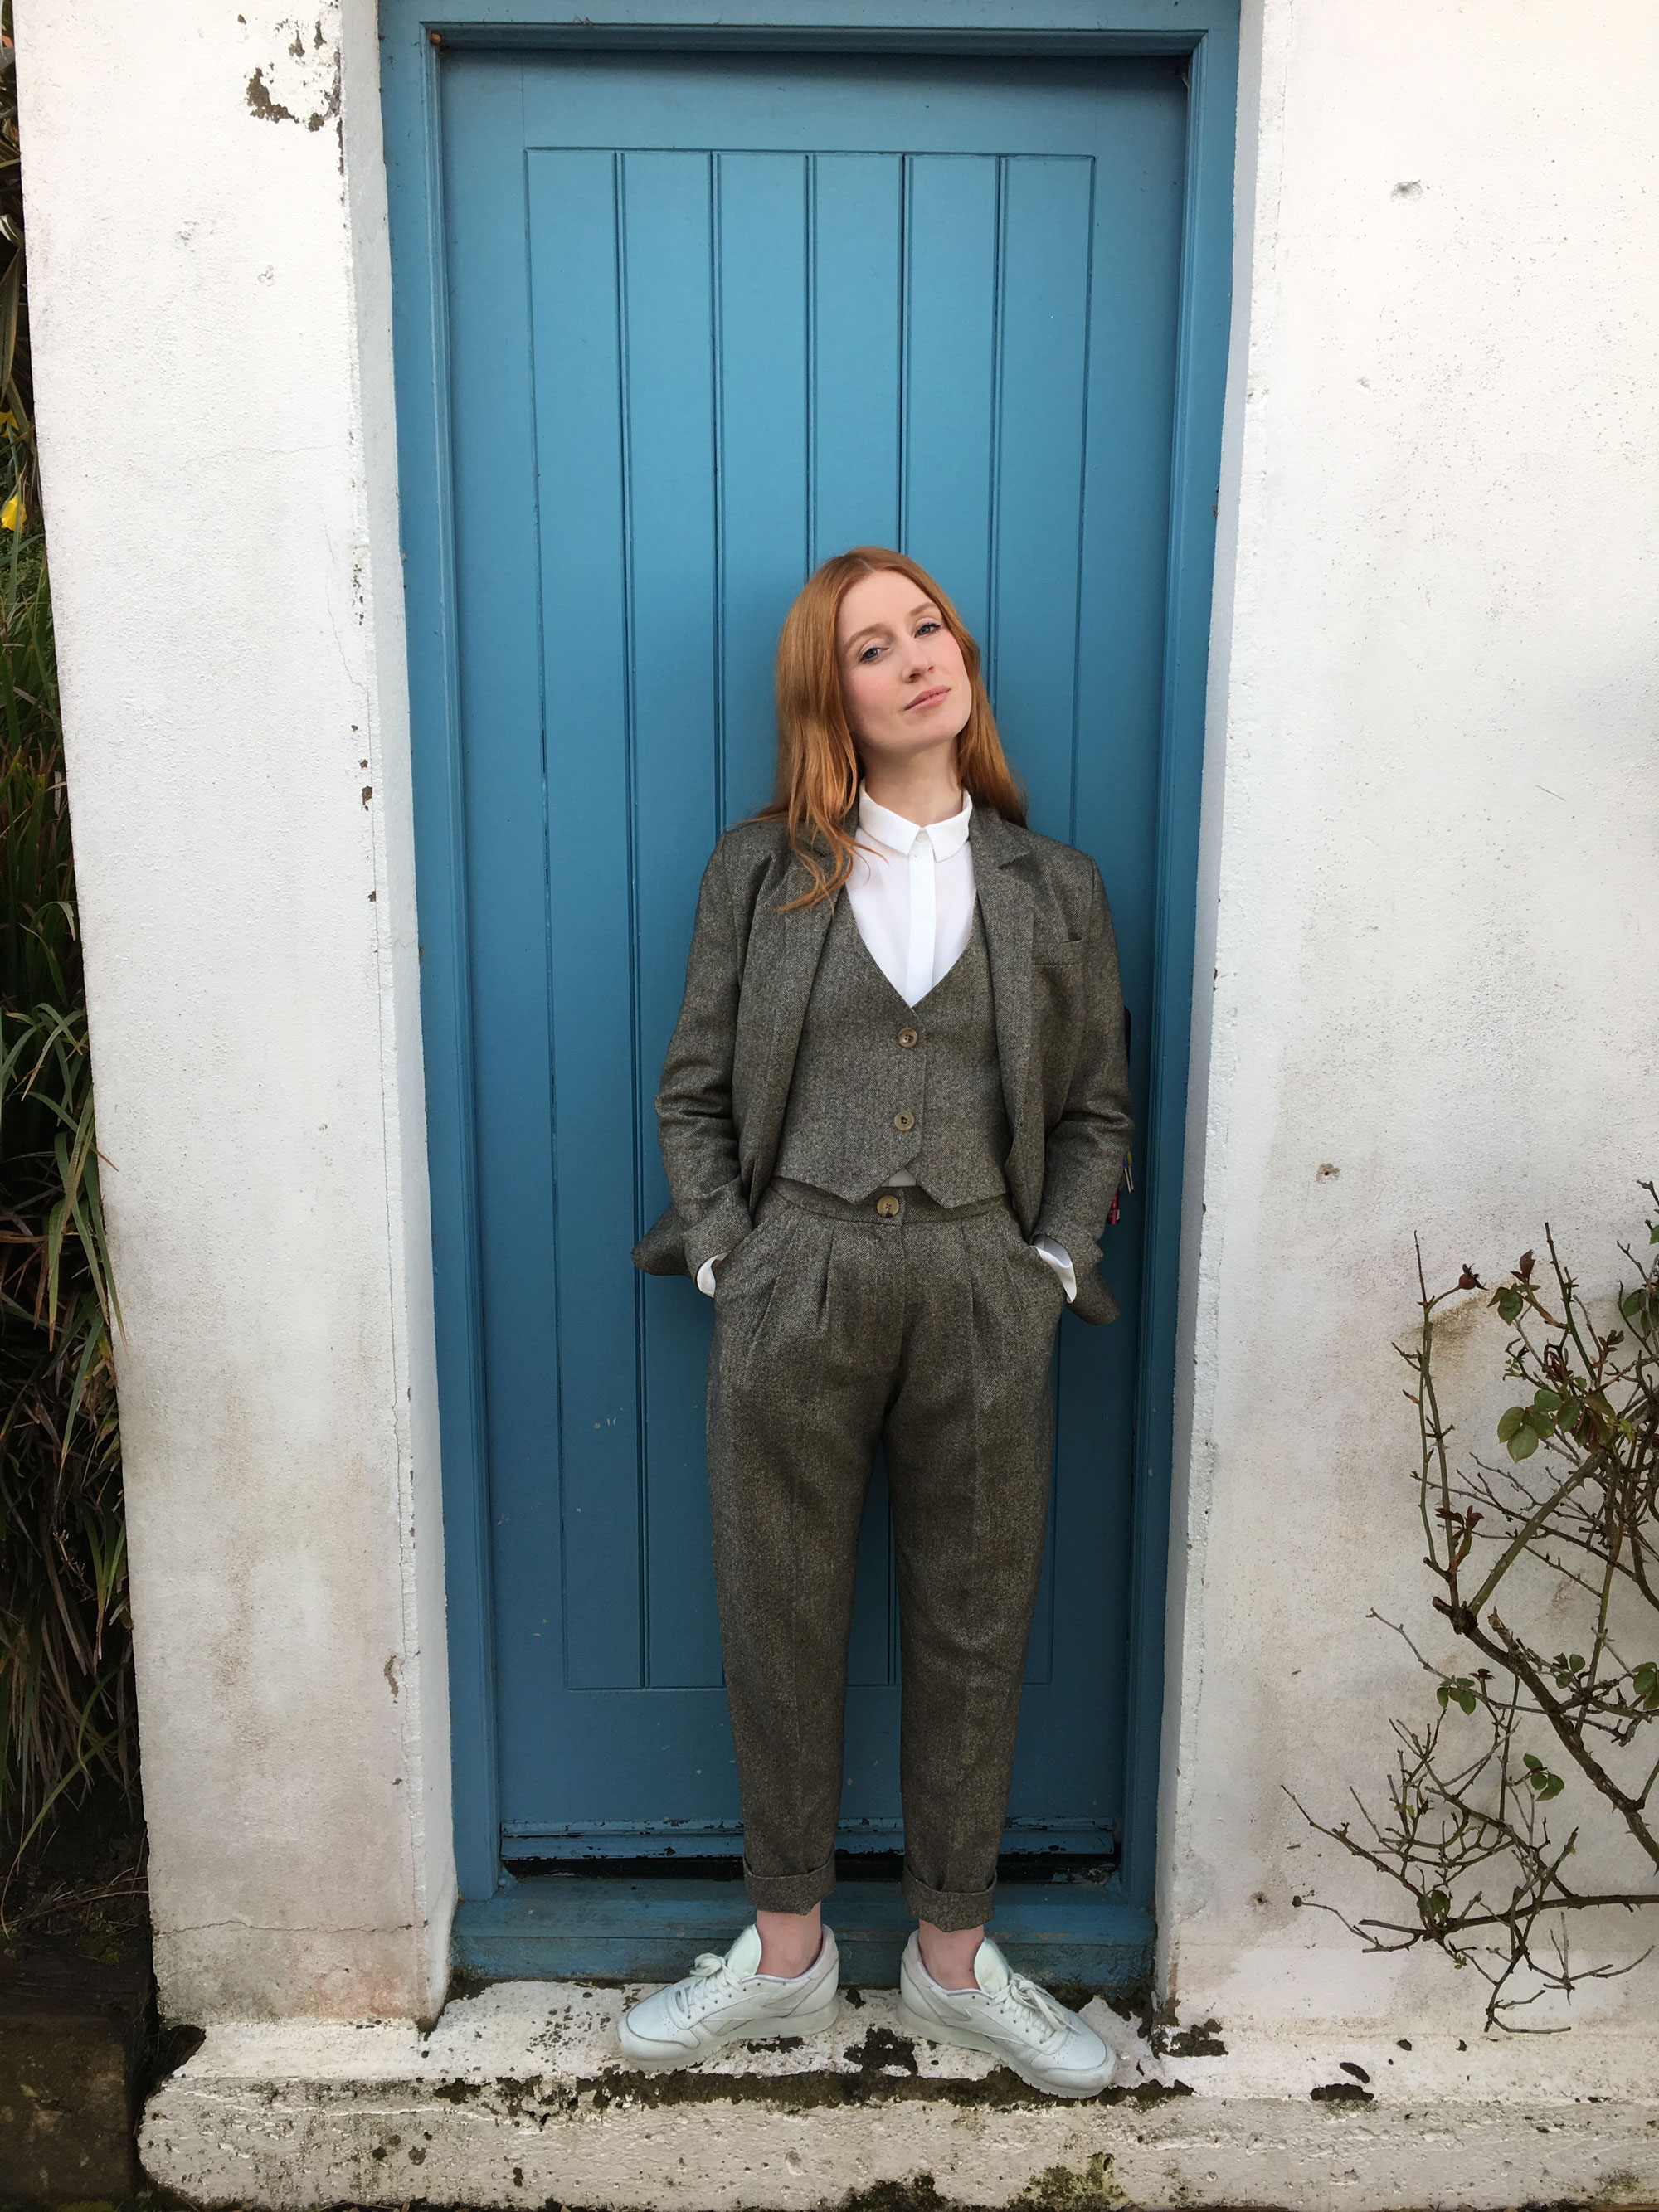 Bespoke suit for Elly Condron